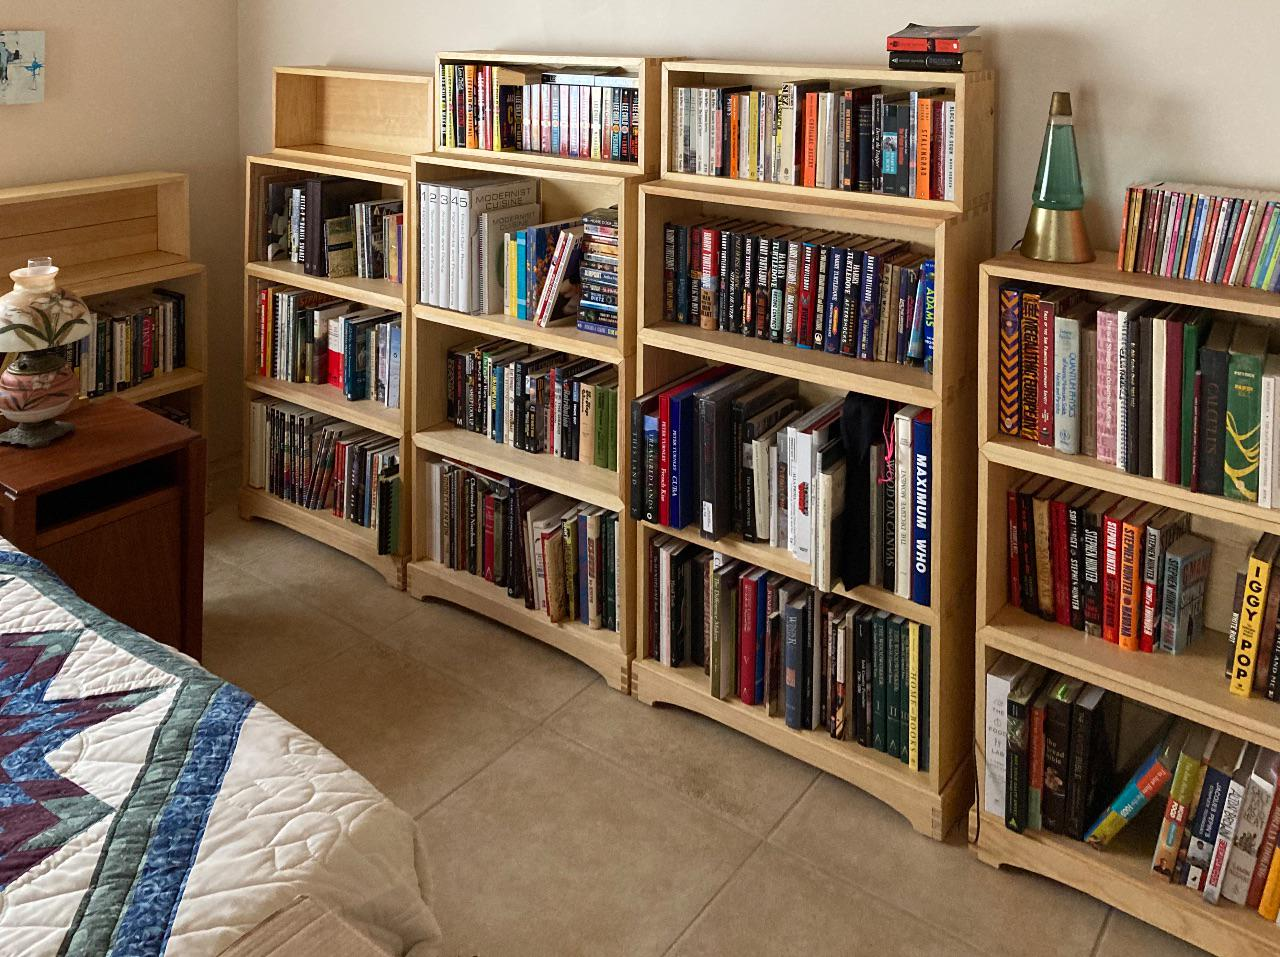 Jefferson Bookcases, with books